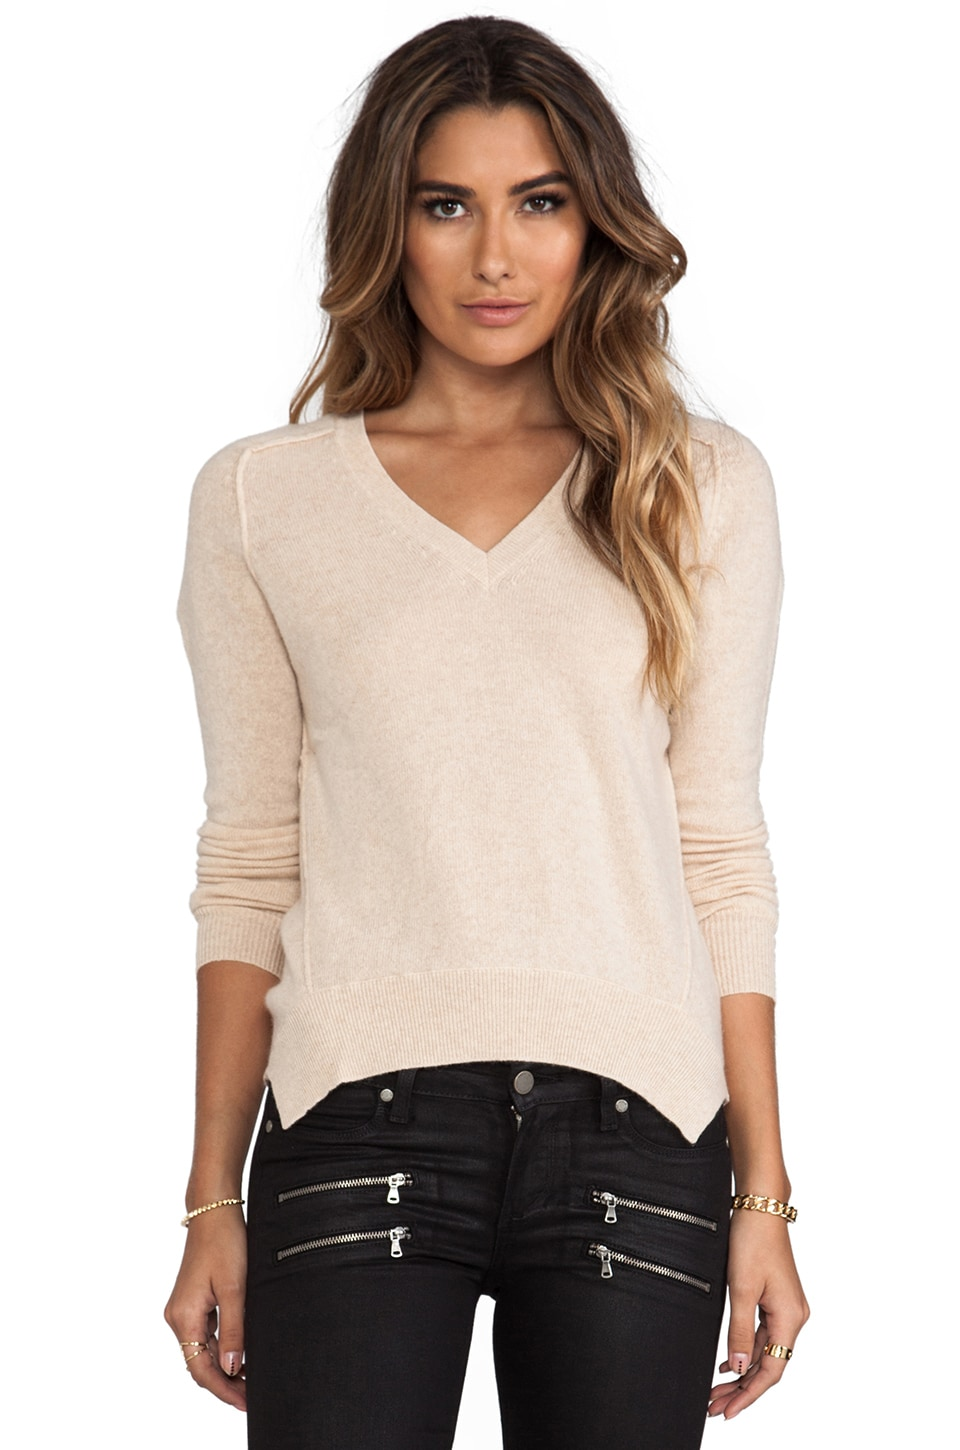 Autumn Cashmere Hi Lo Curved Hem V-Neck in Basket